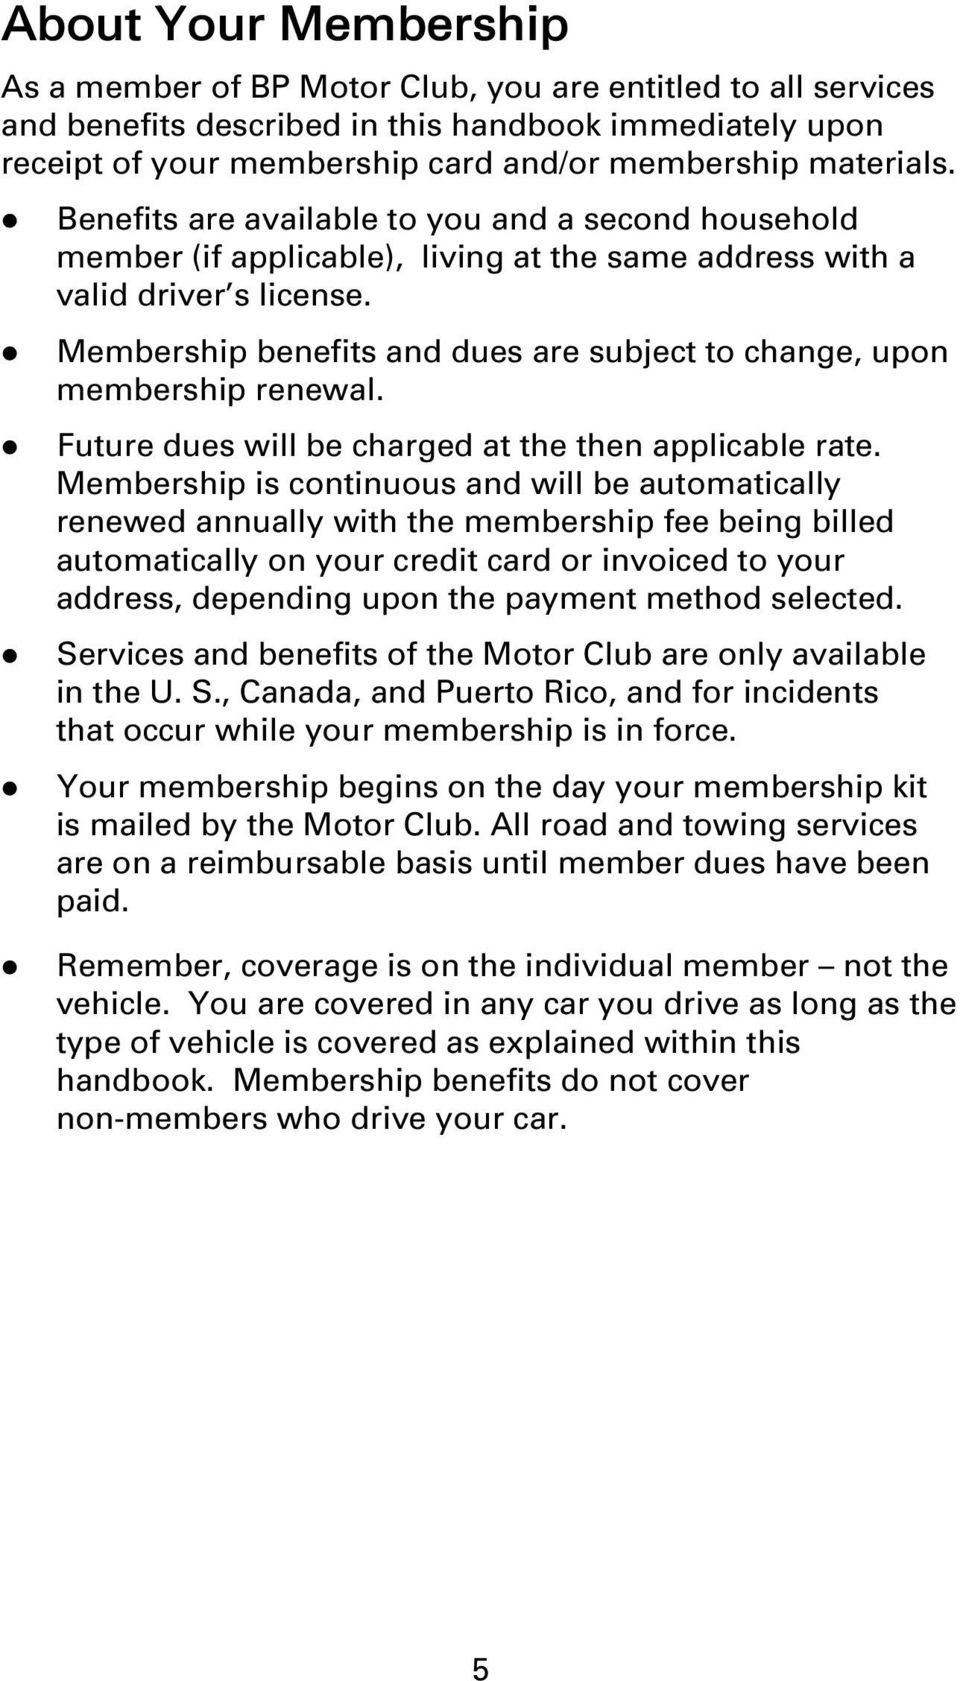 Membership benefits and dues are subject to change, upon membership renewa. Future dues wi be charged at the then appicabe rate.